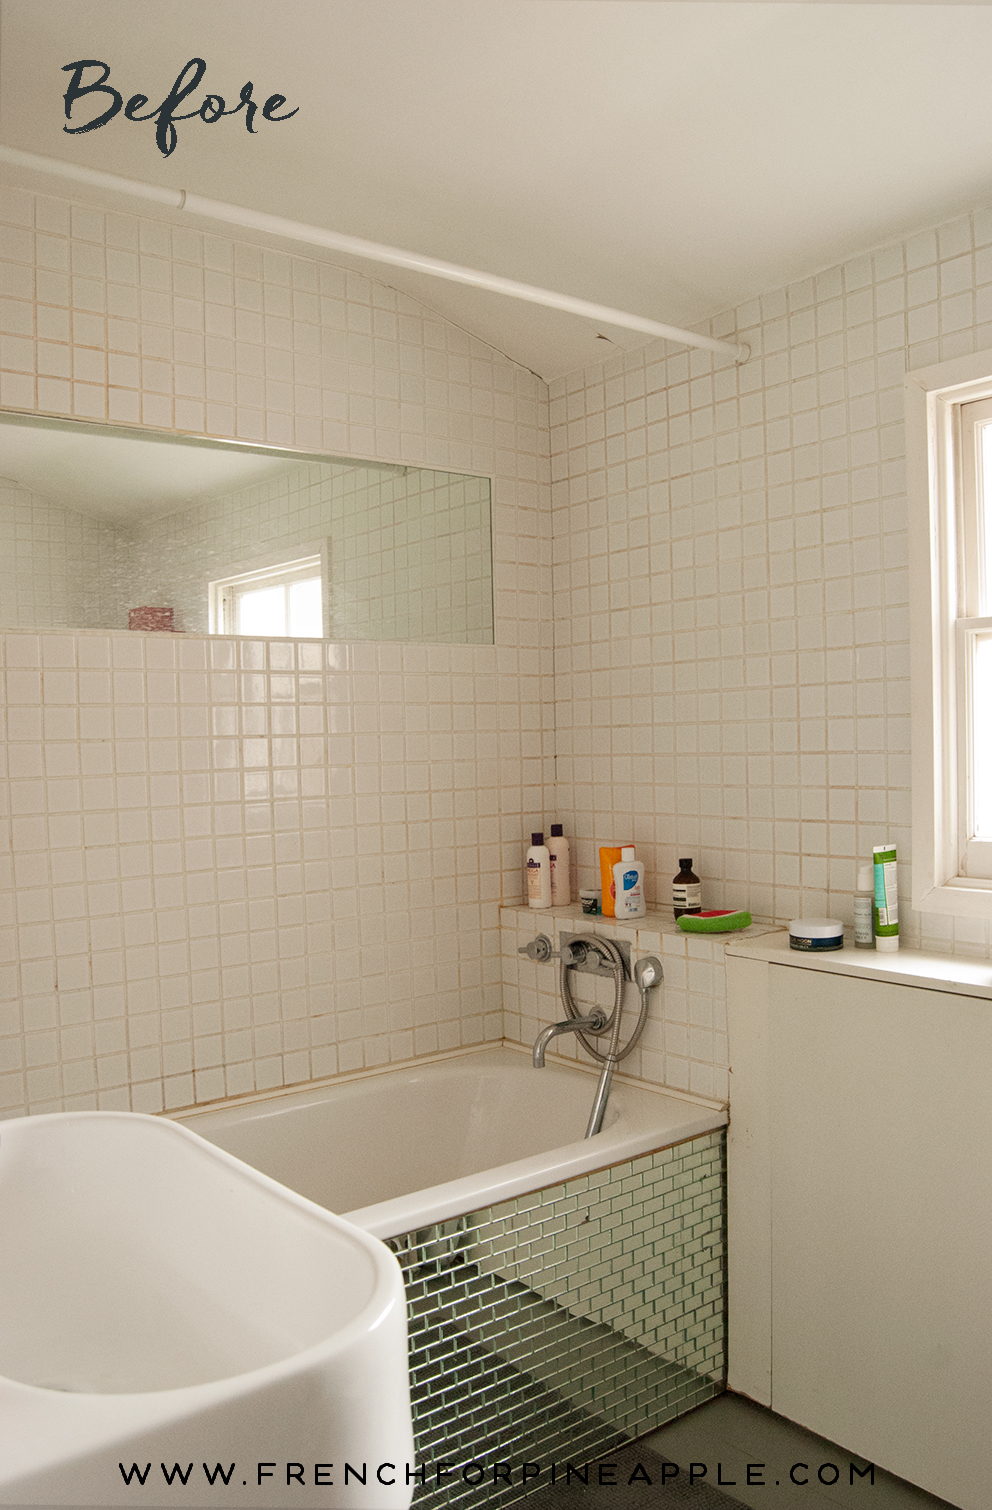 A Mini Bathroom Makeover F R E N C H F O R P I N E A P P L E - Mini bathroom makeover